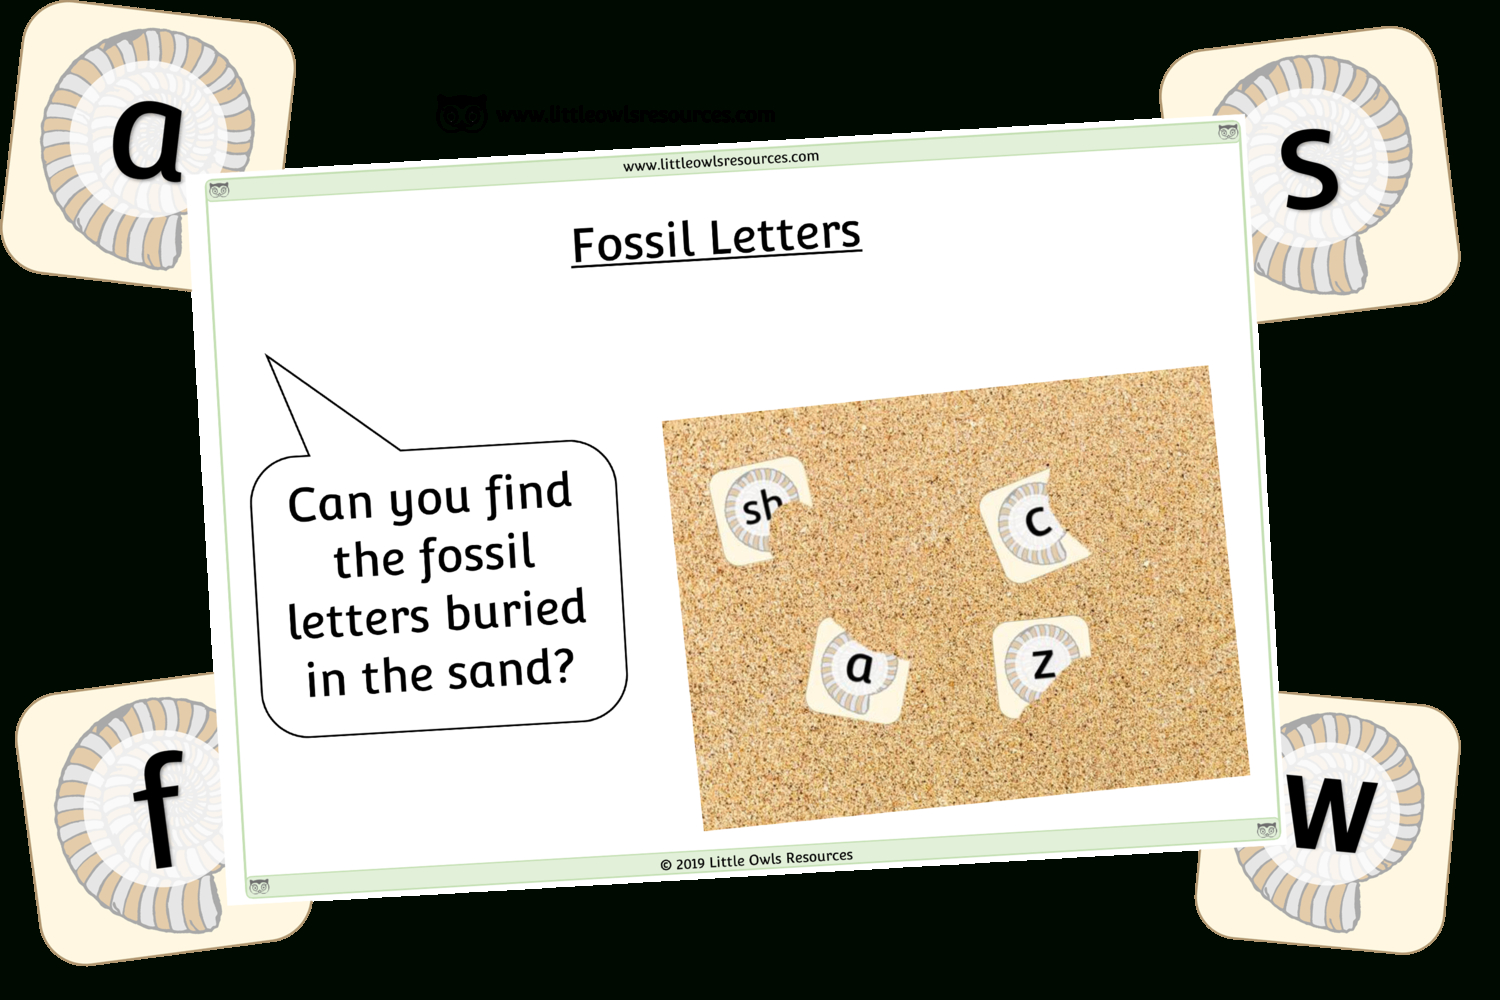 Free Fossil Letters Printable Early Years/ey (Eyfs) Resource - Free Printable Childminding Resources